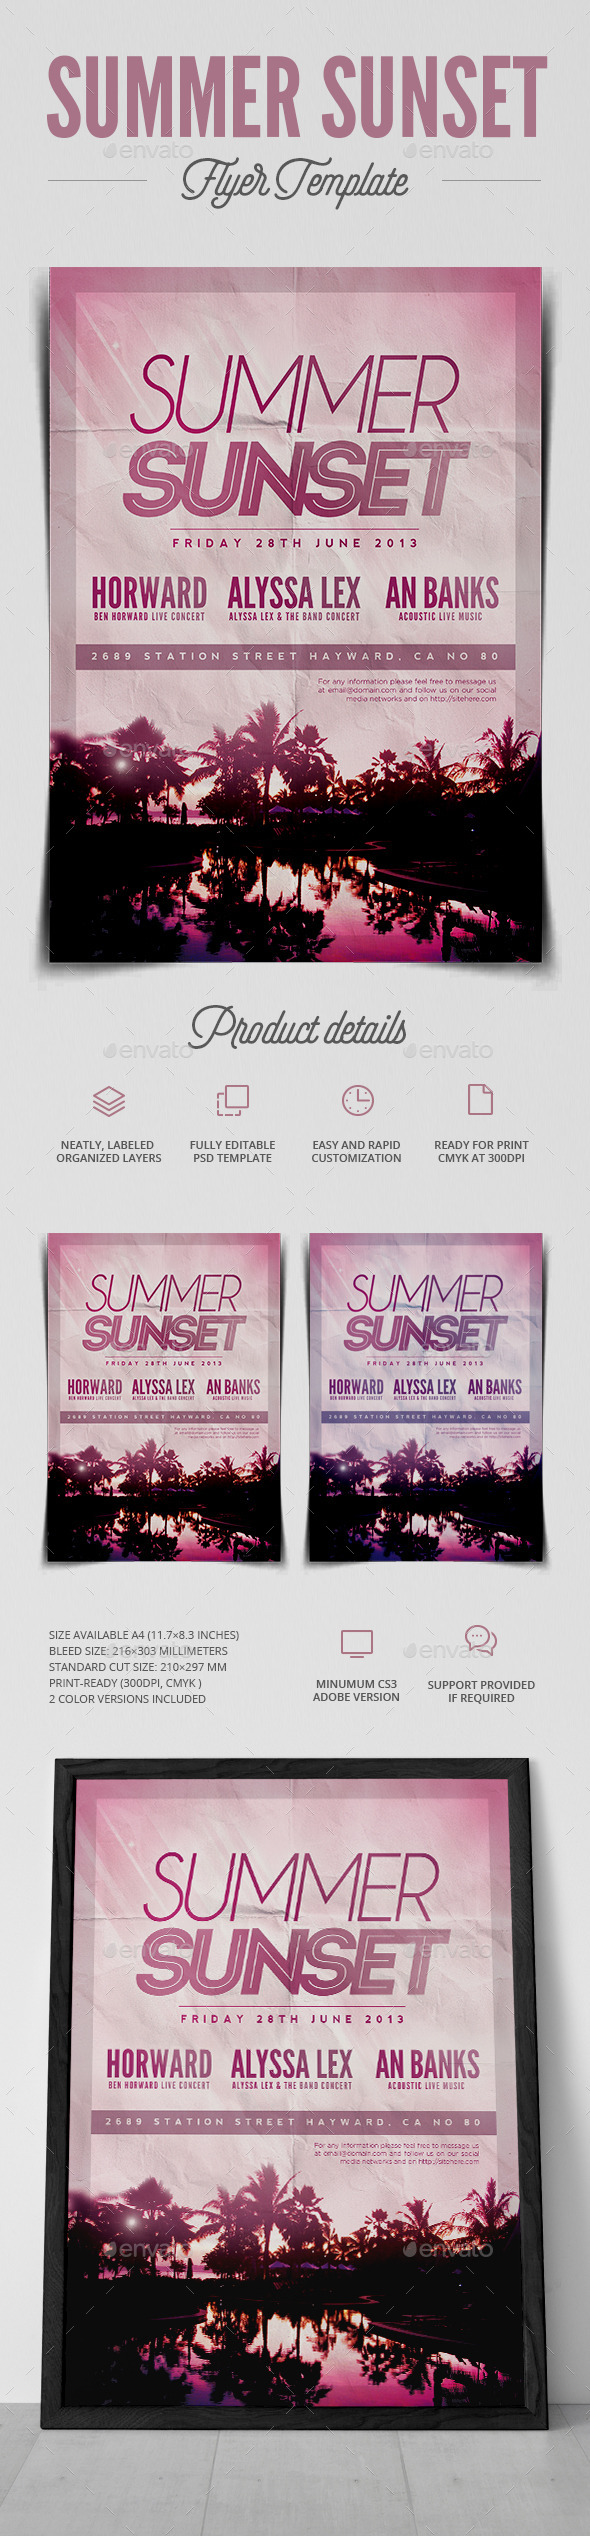 GraphicRiver Summer Sunset Flyer 11273205